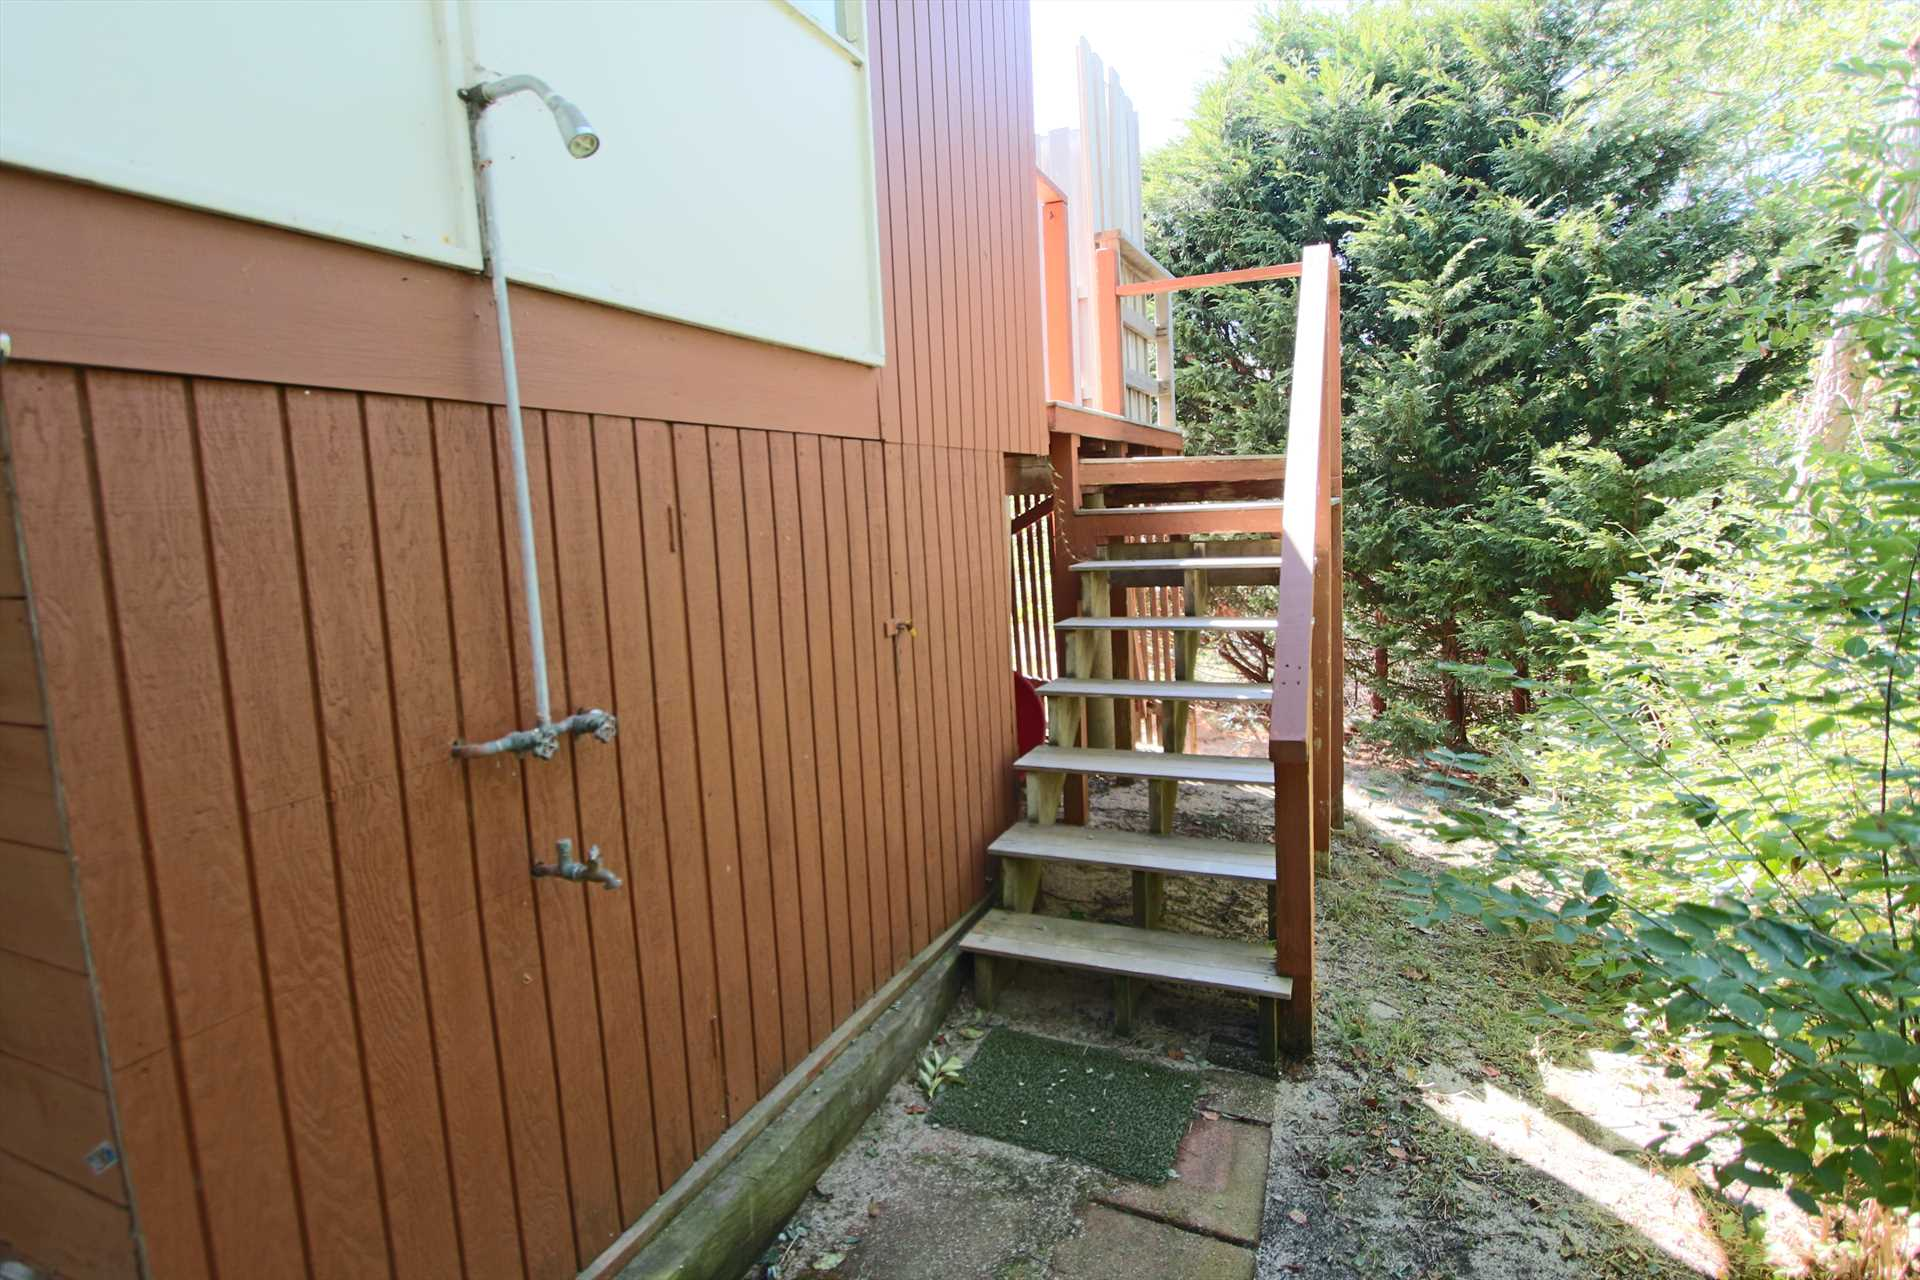 Outdoor Shower - Not Enclosed